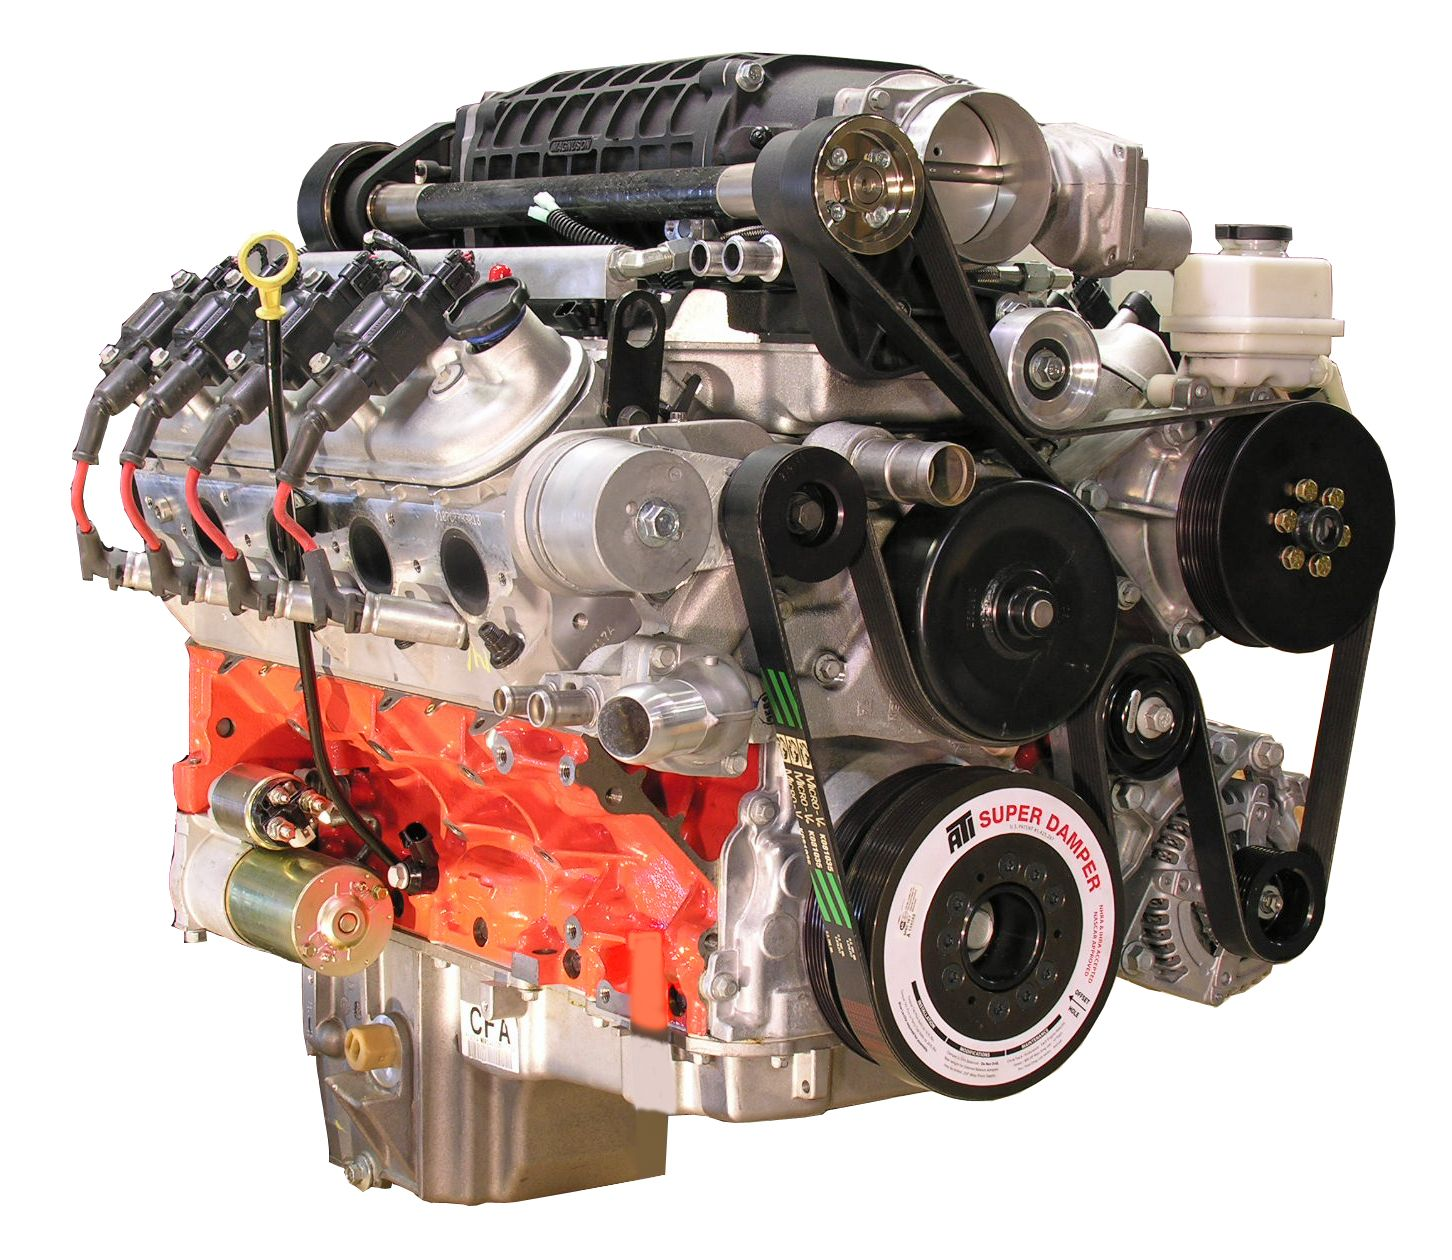 Ls1 Supercharger Magnuson: LSx 427 Engine With TVS2300 Magnuson Supercharger & T56